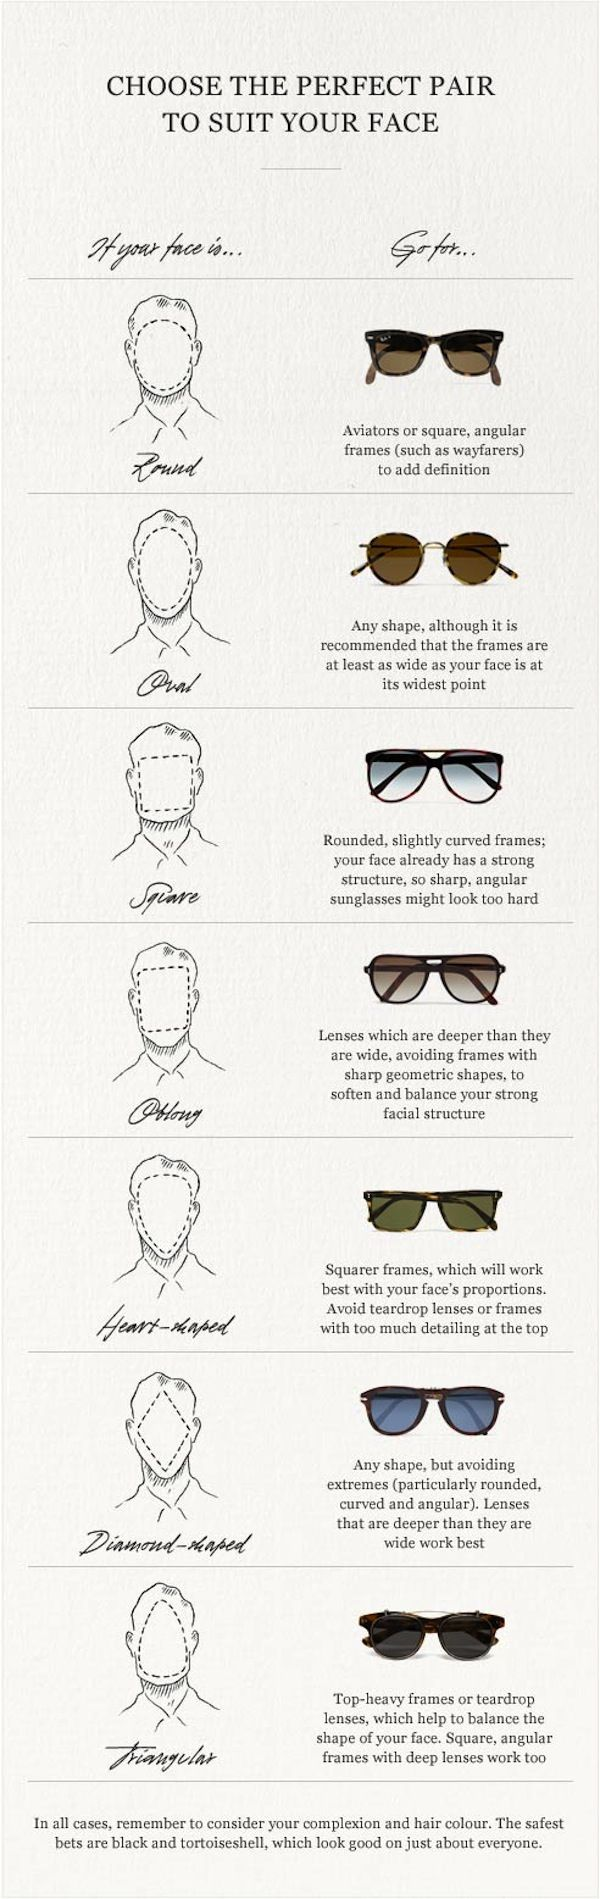 d609c1f4c7 Men's Sunglasses by Face Shape | Be hair aware and how your face is  structured to pic the right shades for your face. Visit  www.TheLAFashion.com for Fashion ...